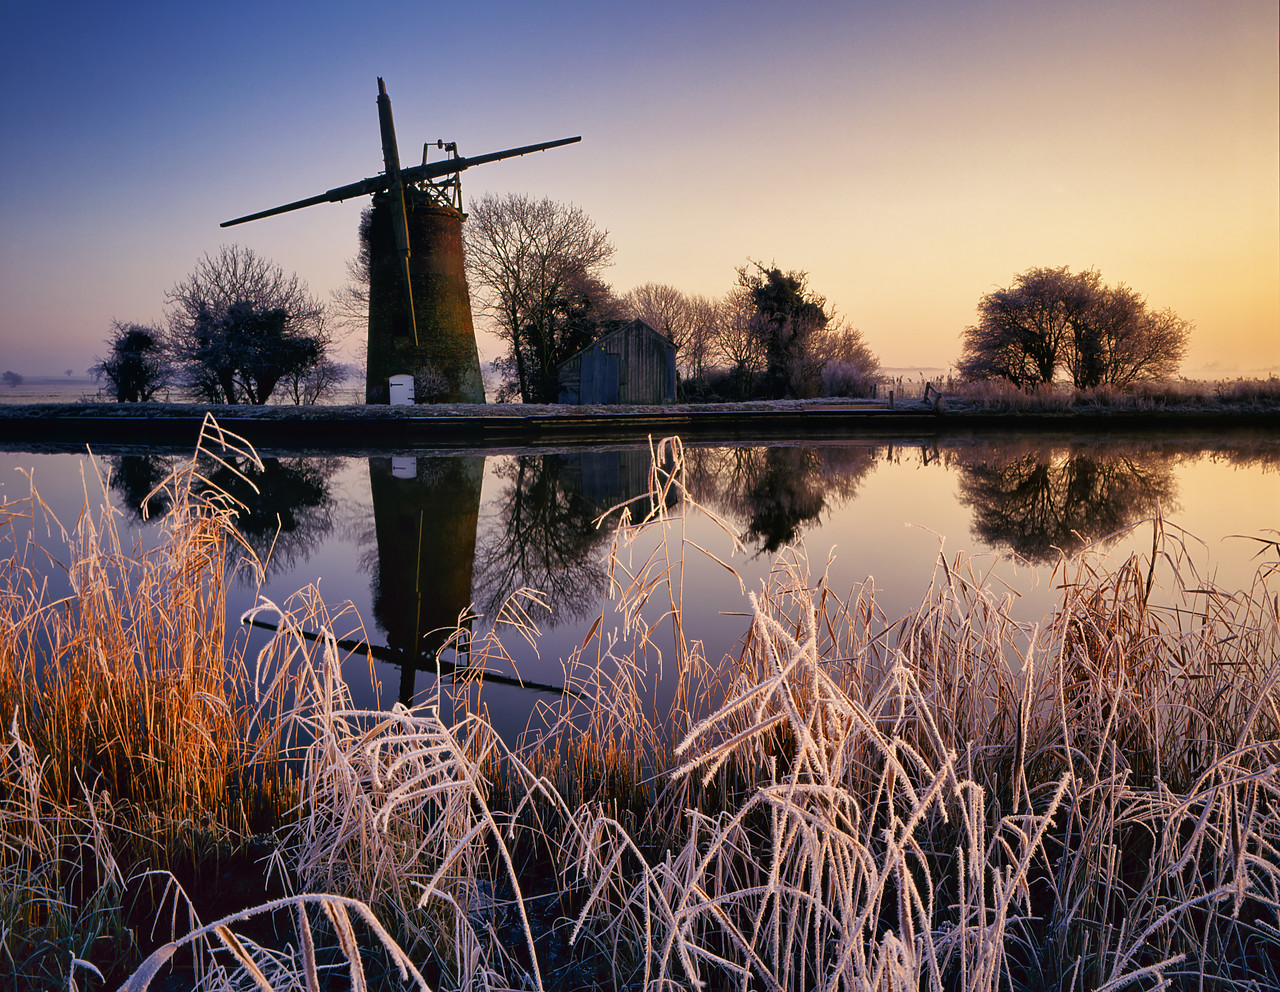 #400138-1 - Oby Mill in Winter, Norfolk Broads National Park, Norfolk, England